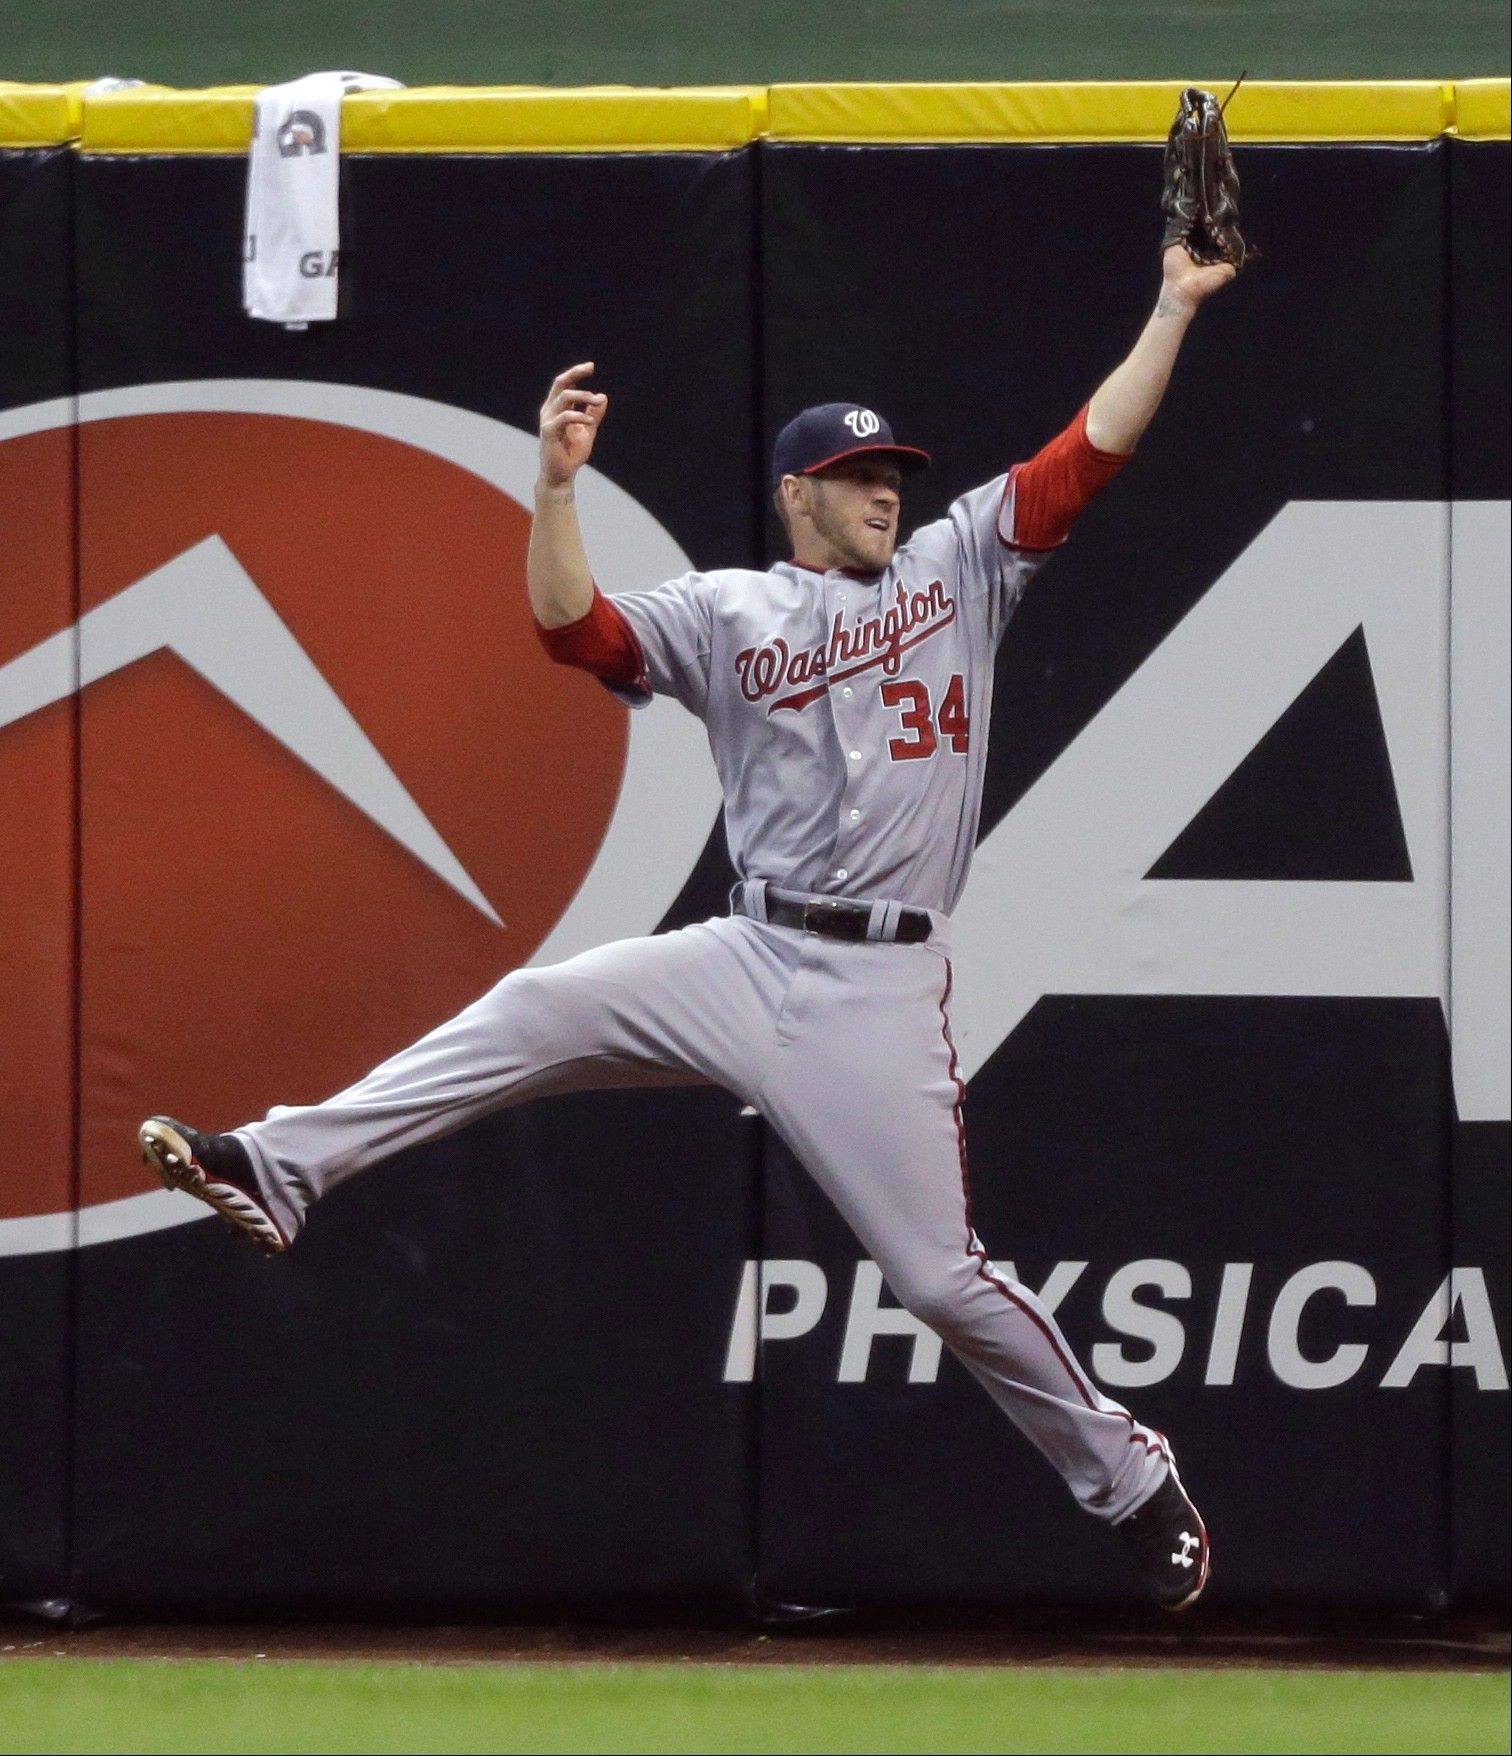 The Nationals� Bryce Harper leaps to make the catch on a ball hit by the Brewers� Corey Hart during the eighth inning Thursday in Milwaukee.